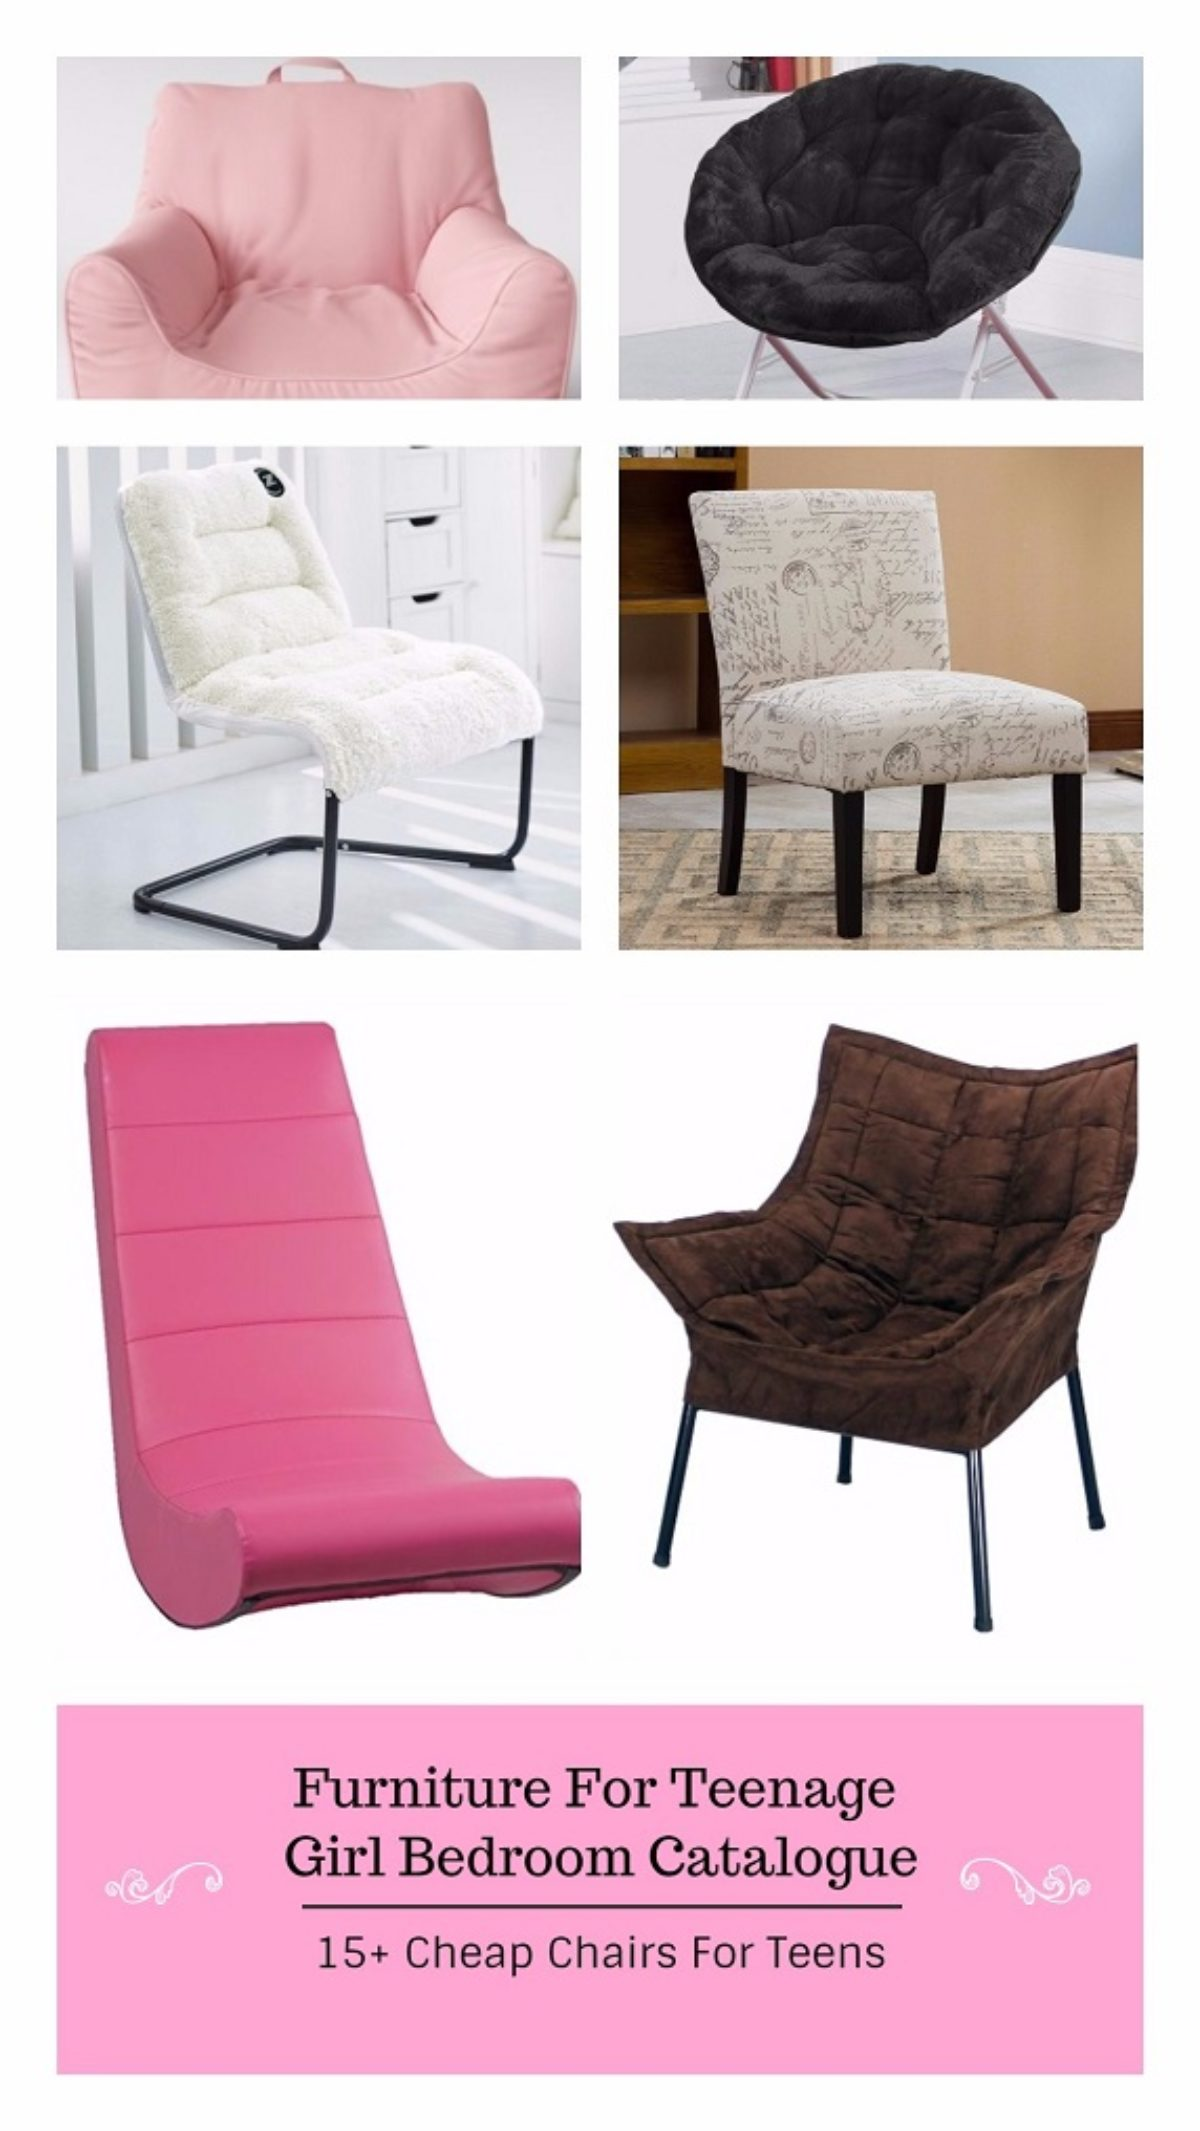 Furniture For Teenage Girl Bedroom Catalog: 15+ Cheap Chairs For Teens